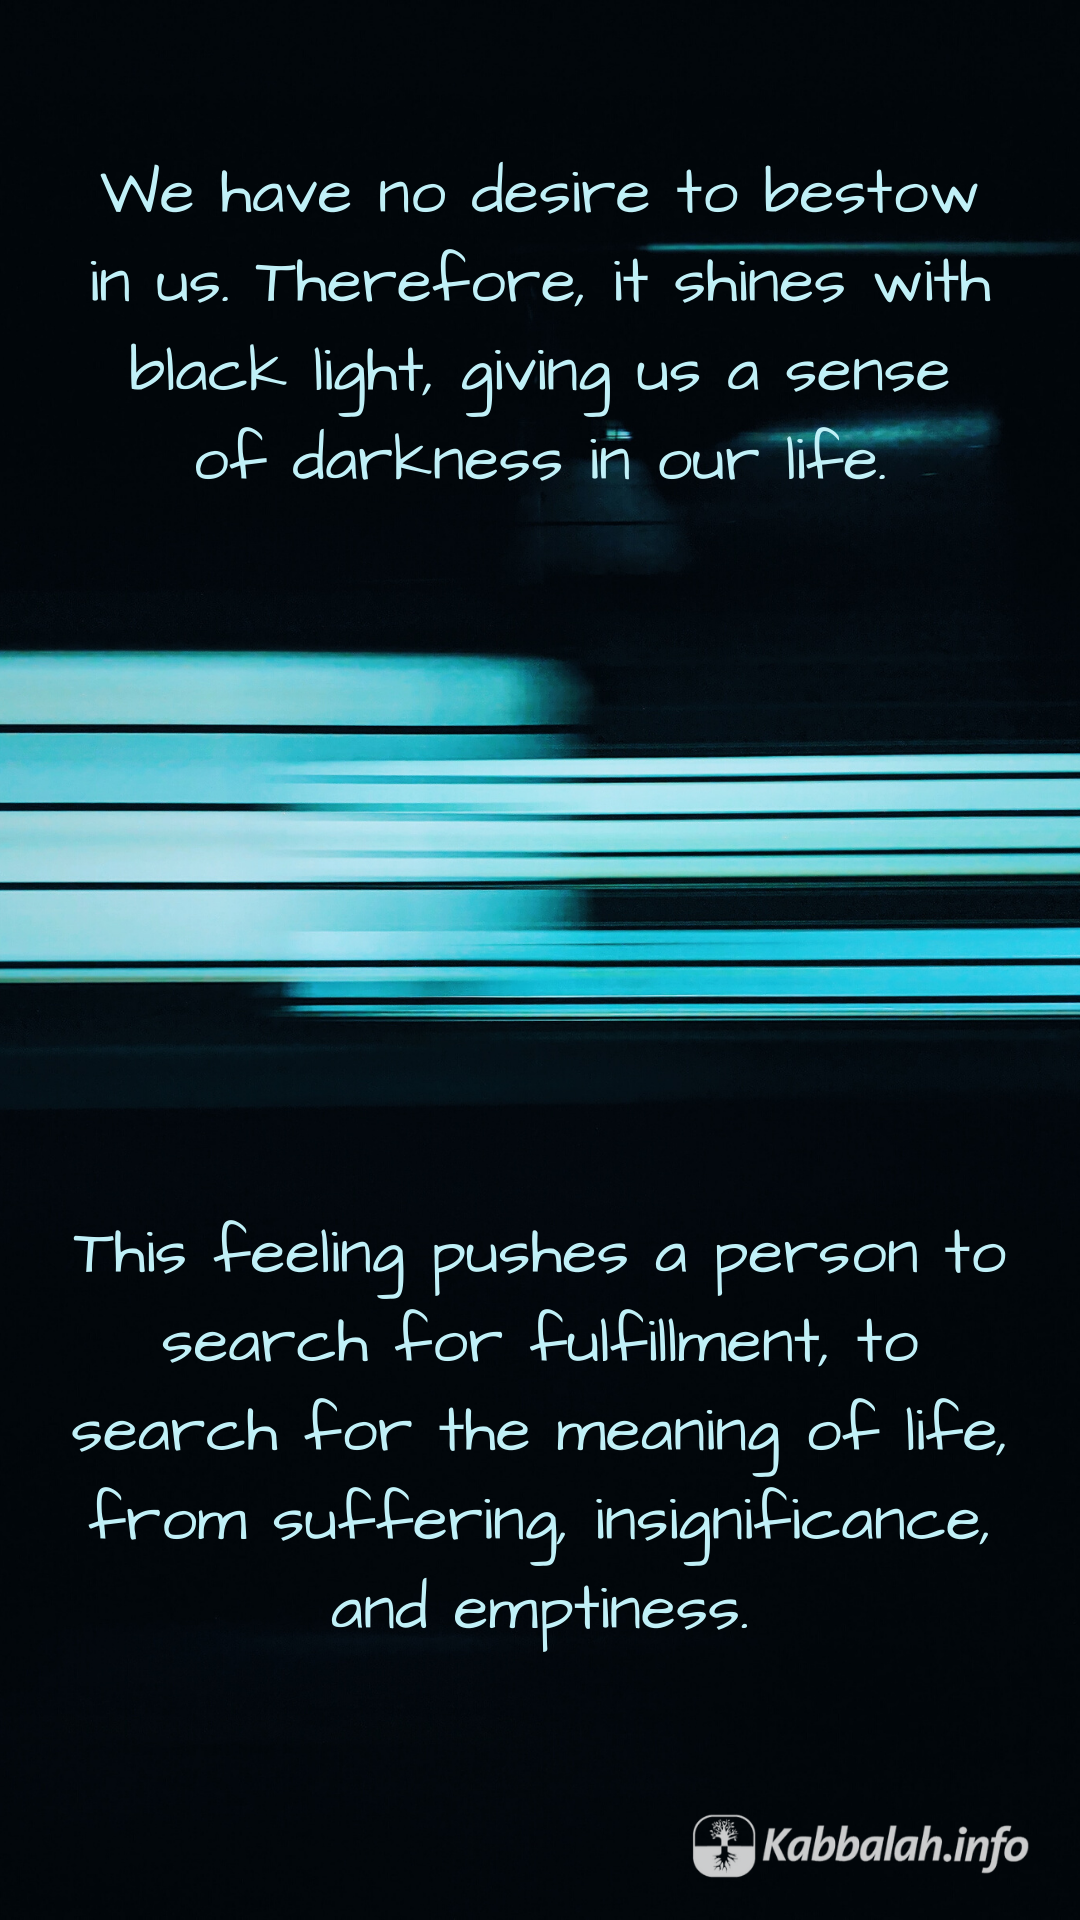 We Have No Desire To Bestow In Us Therefore It Shines With Black Light Giving Us A Sense Of Darkness In In 2020 Inspirational Quotes Kabbalah Quotes Meaning Of Life